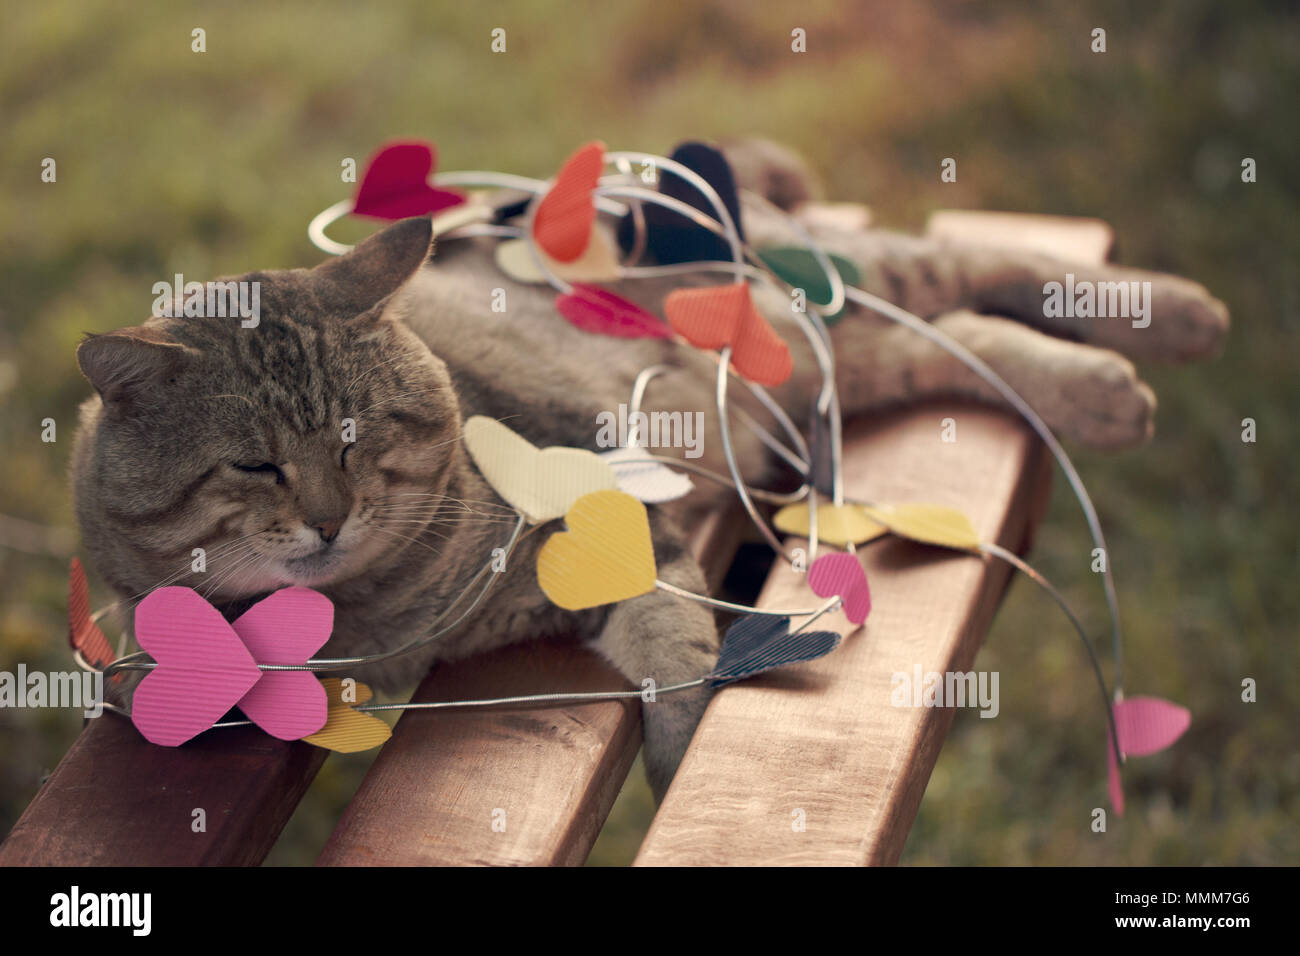 a Cat sitting on multicolored paper hearts Stock Photo